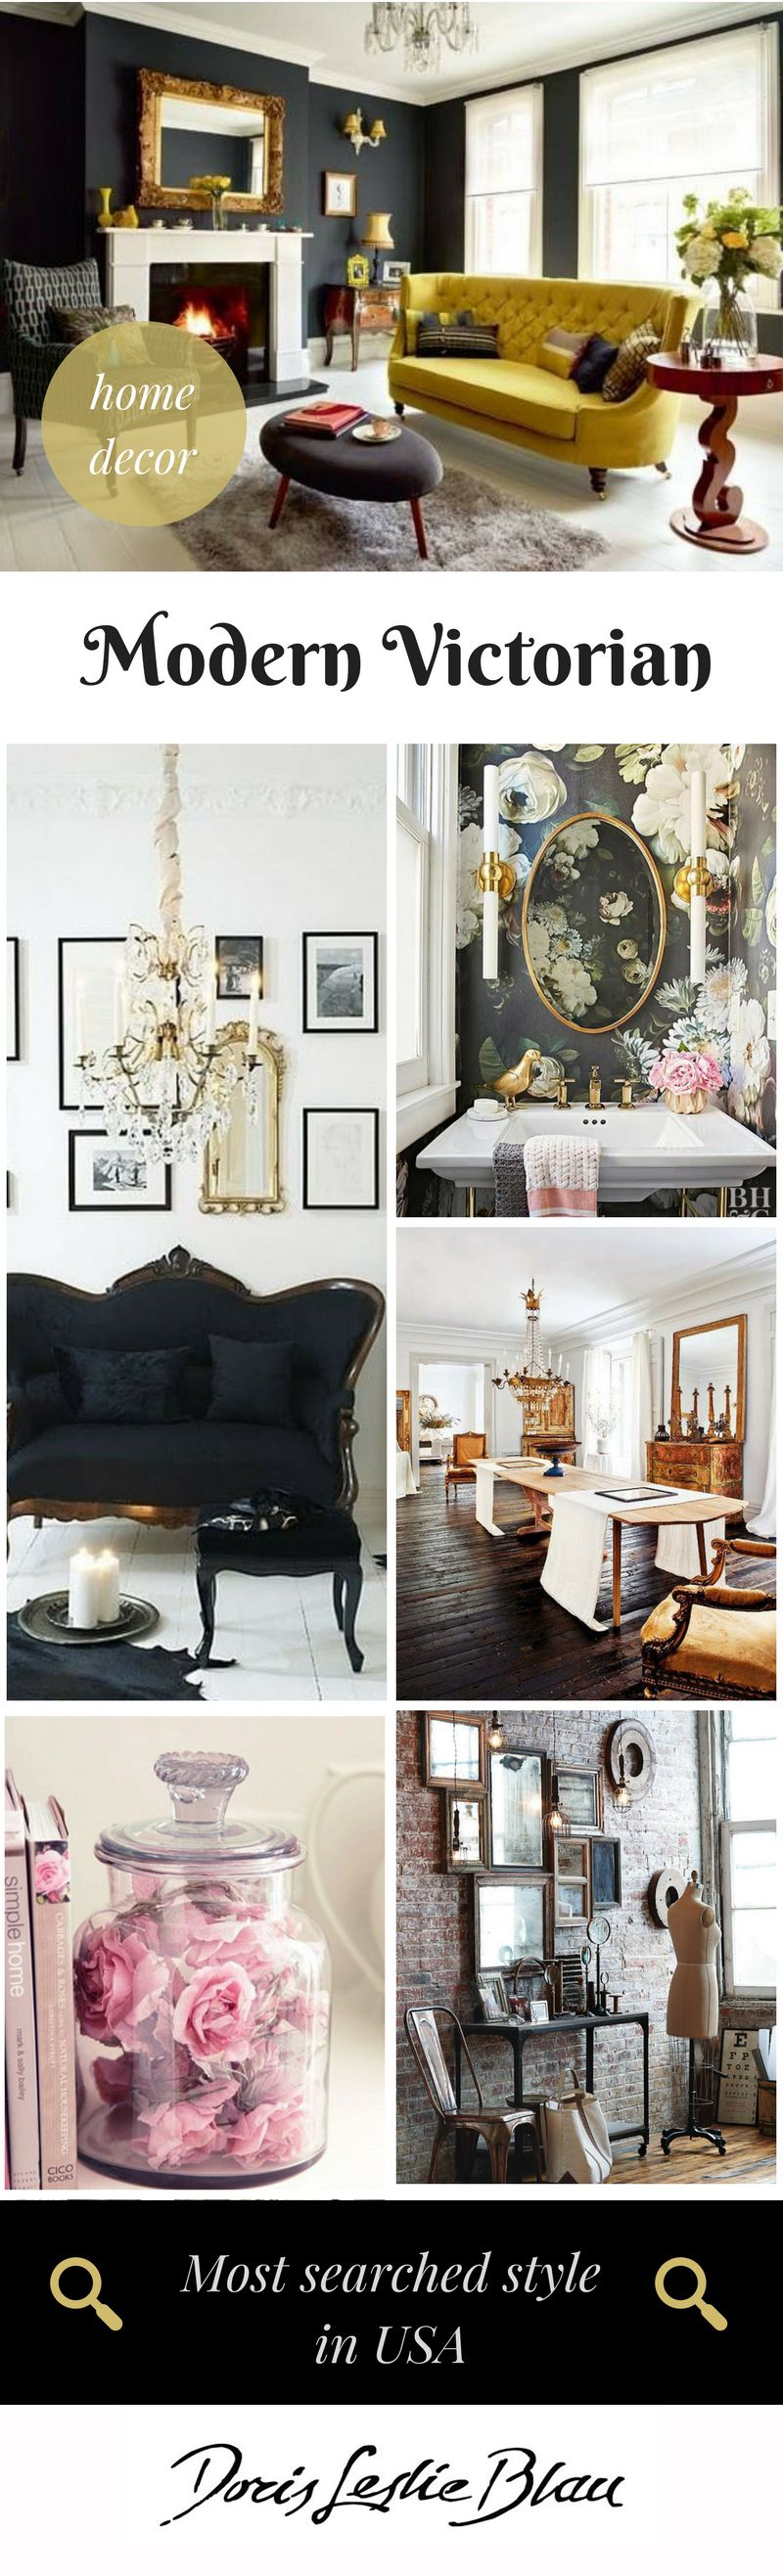 modern-victorian-home-decor-vinctorian-interior-living-room.jpg 800×2,633 pixels